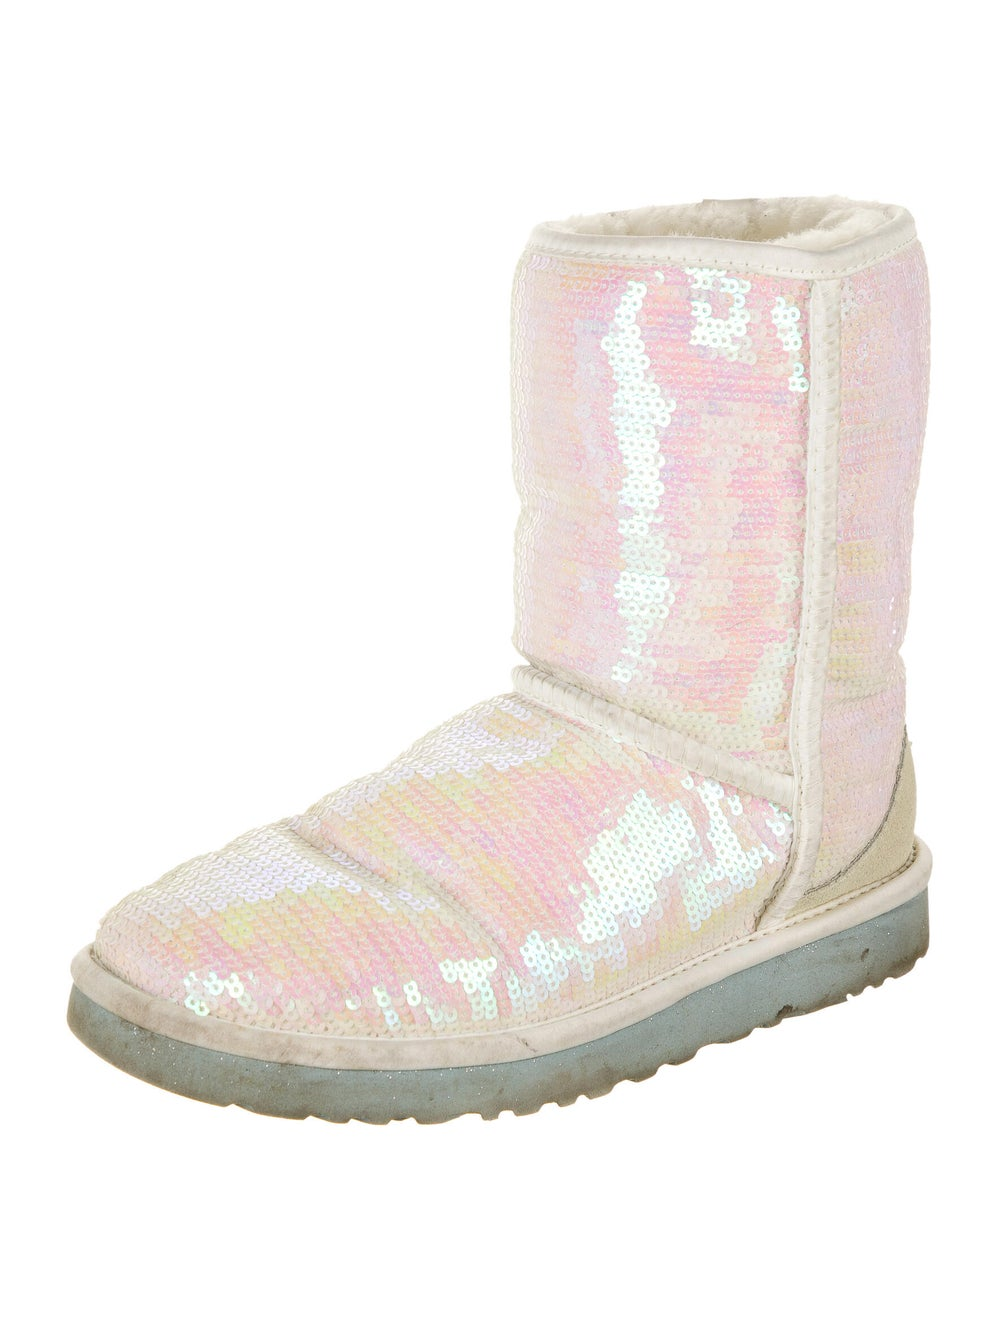 UGG Boots Pink - image 2